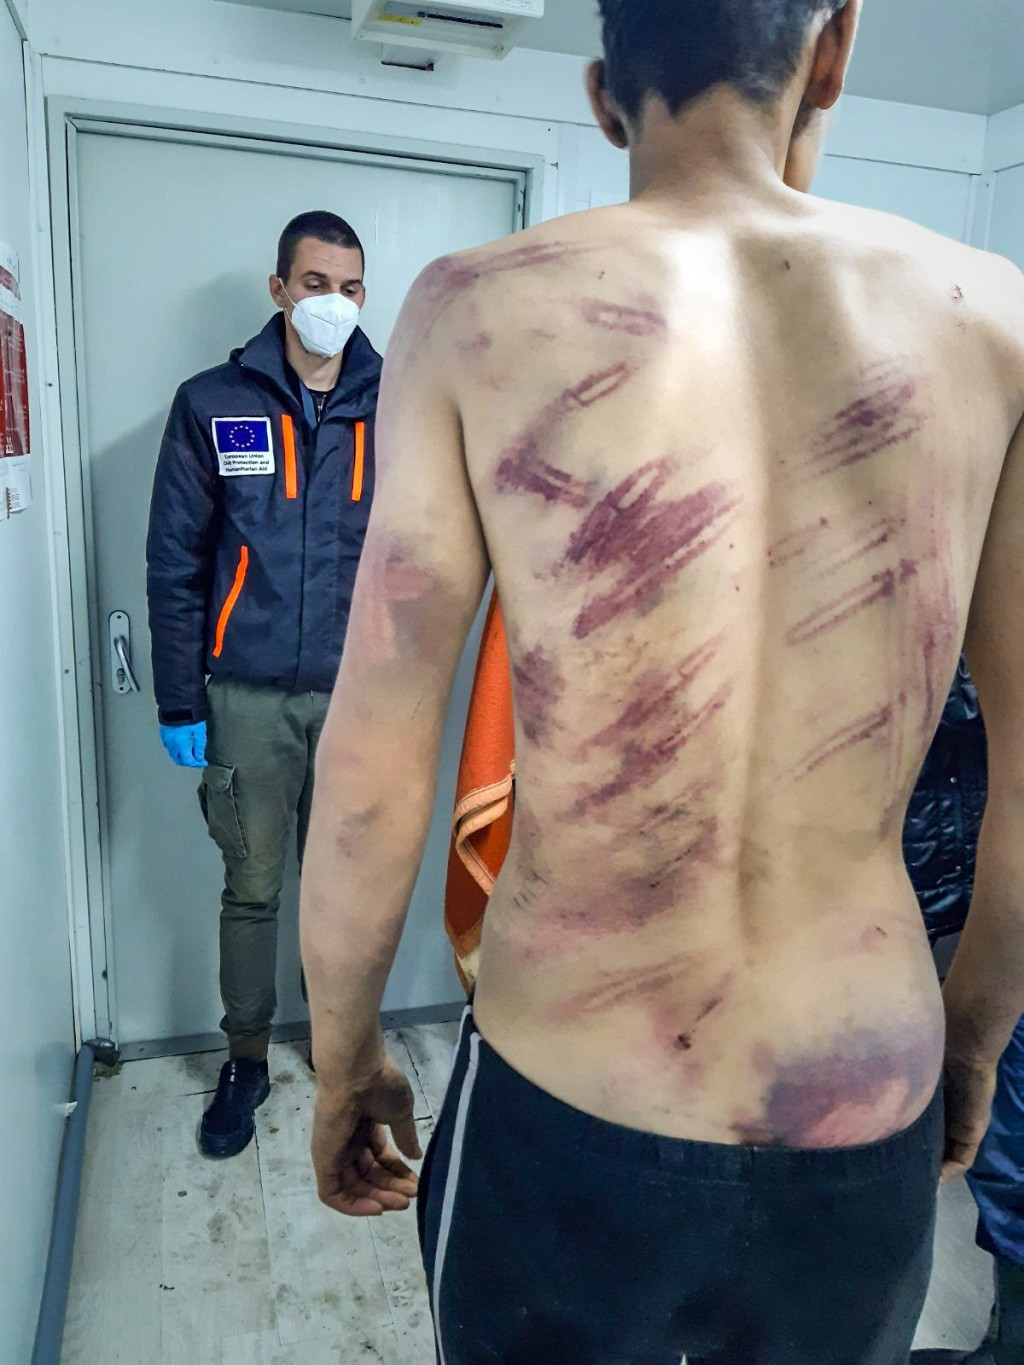 In this undated image, a migrant man alleging he was brutalized and summarily expelled back to Bosnia by Croatian law-enforcement officers when they t...